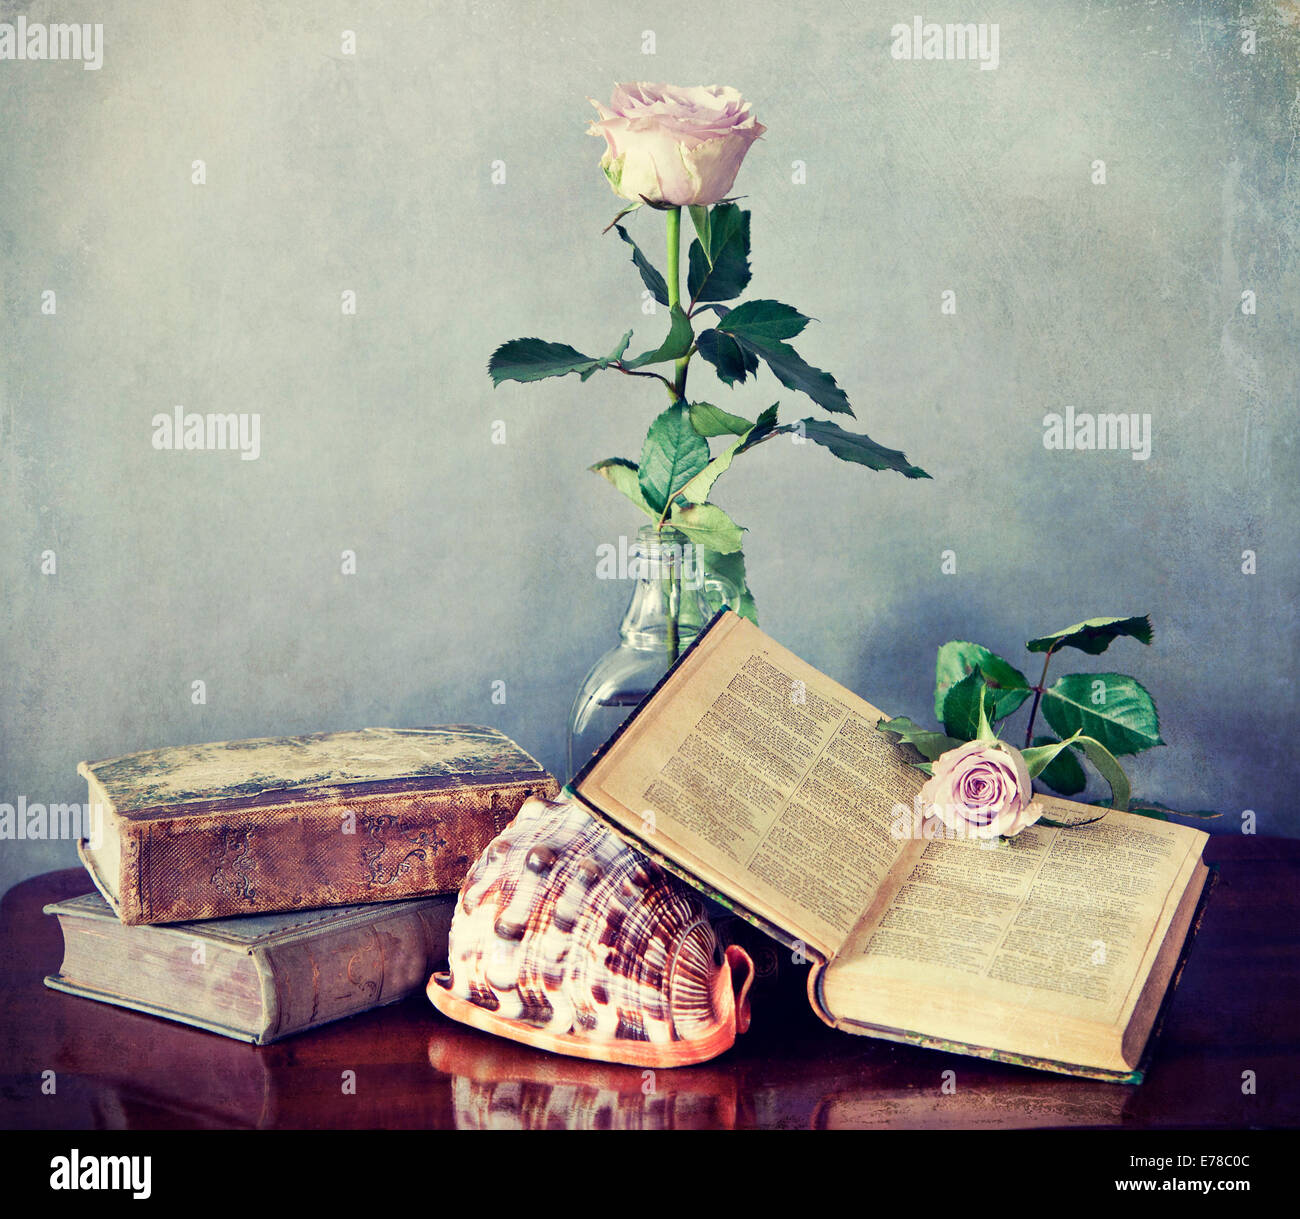 Interior still life, composition of antique books, pink roses and shell with retro desaturated Instagram-like effects Stock Photo